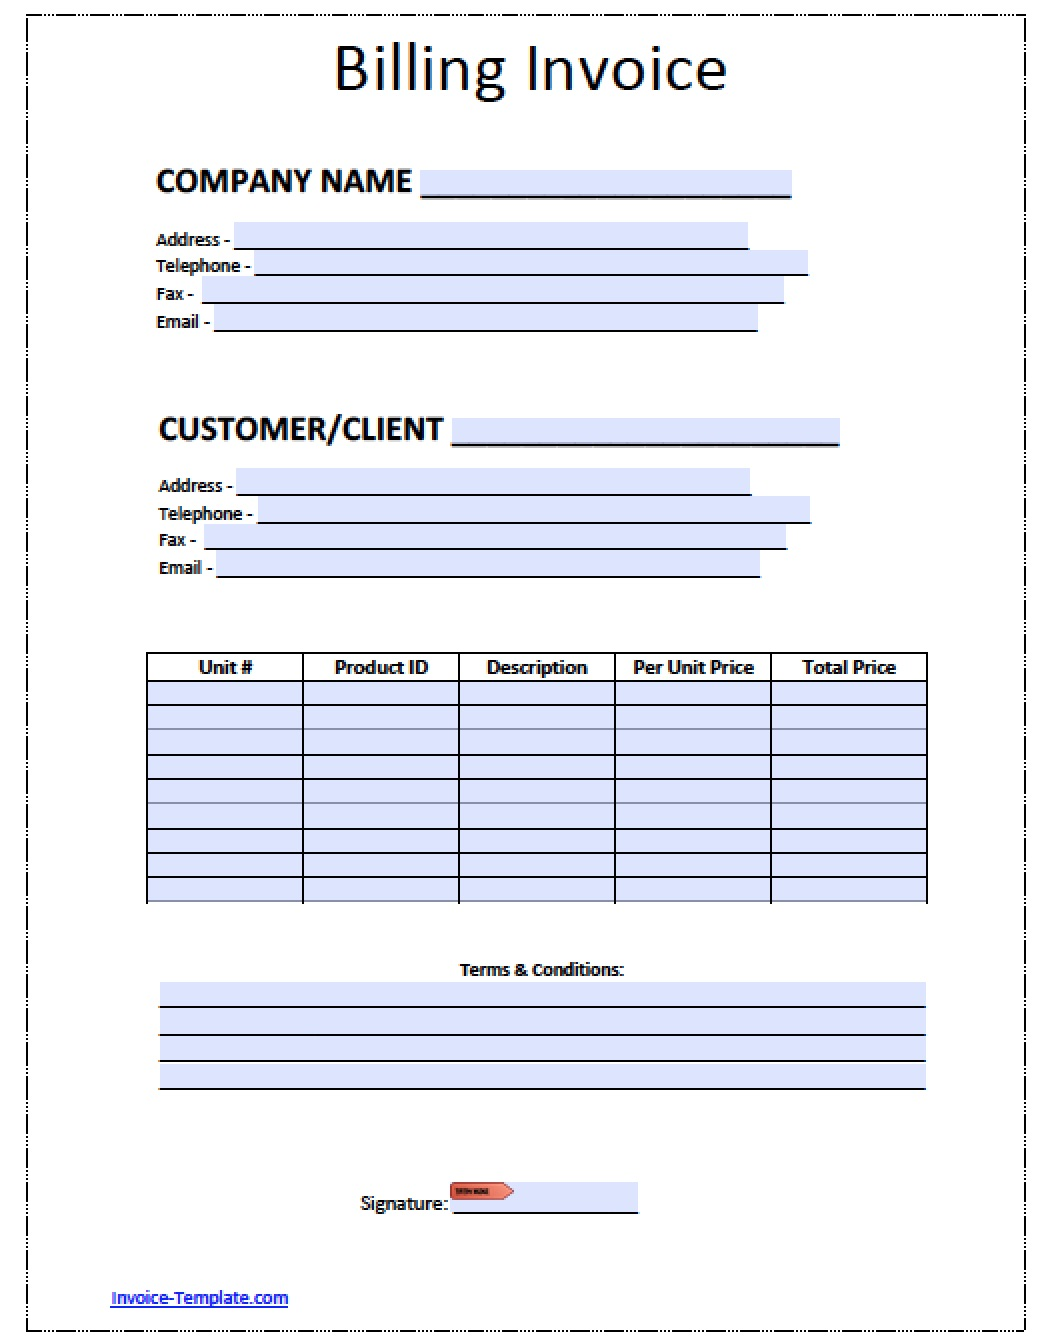 Free Billing Invoice Template Excel PDF Word Doc - Invoices template